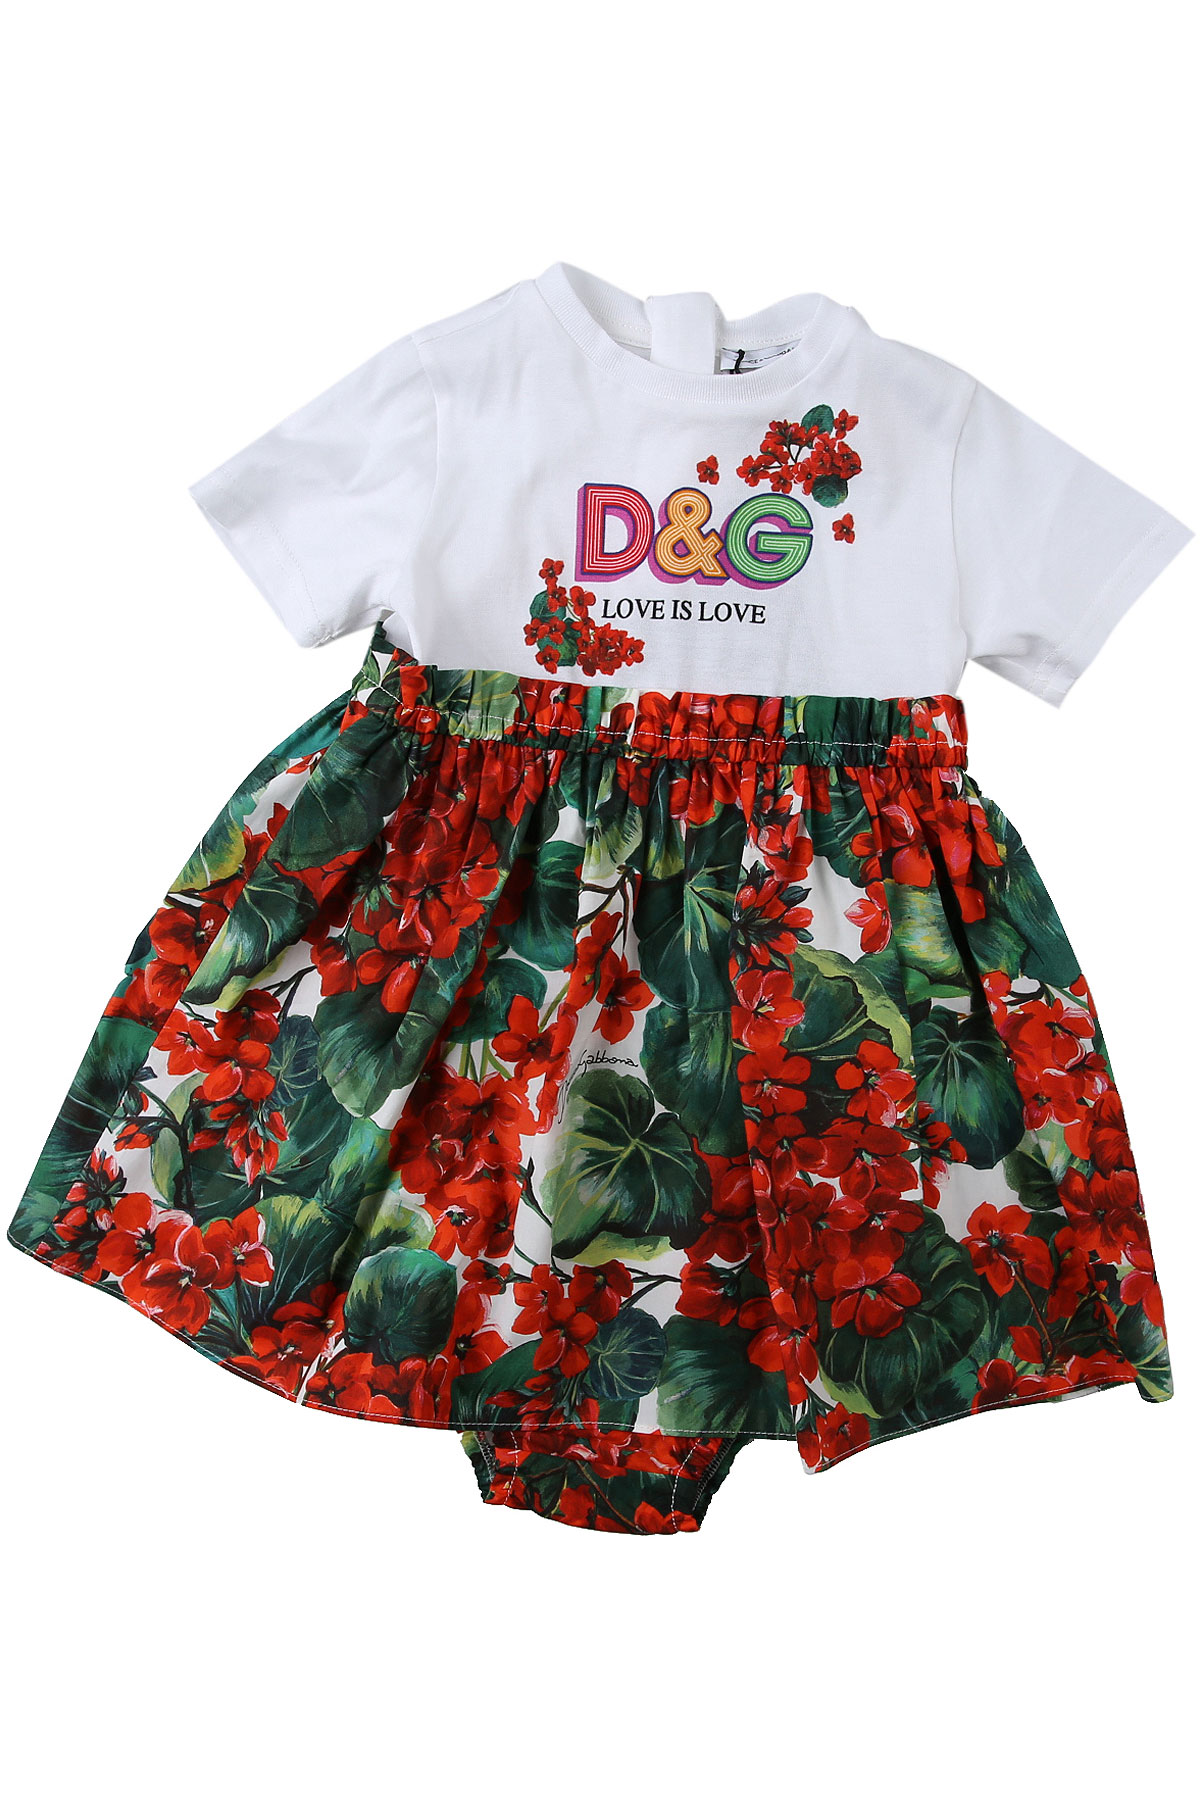 Dolce & Gabbana Baby Dress for Girls On Sale, Red, Cotton, 2019, 12M 18M 24M 30M 9M